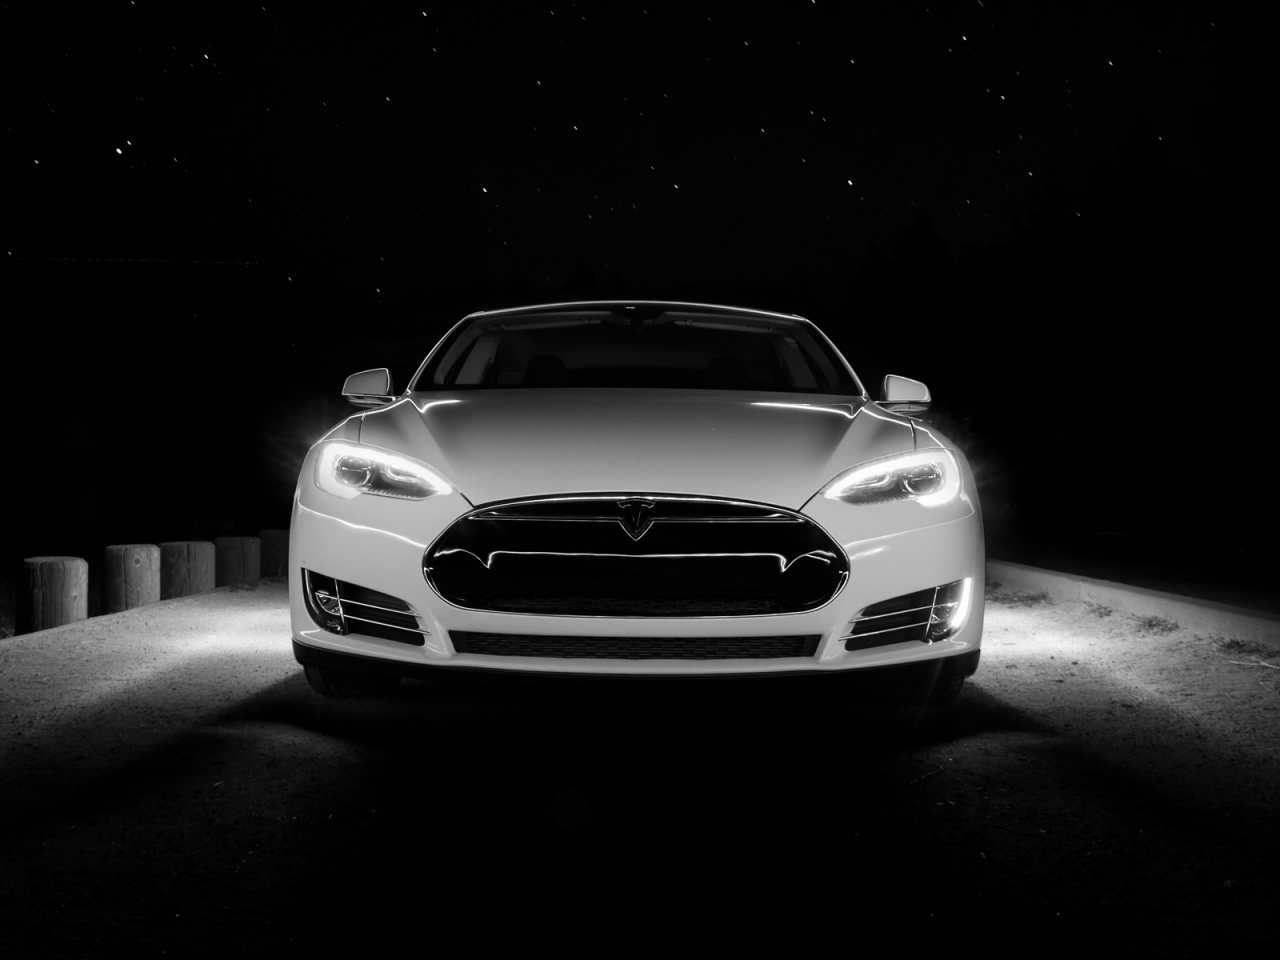 White Tesla Front  for 1280 x 960 resolution